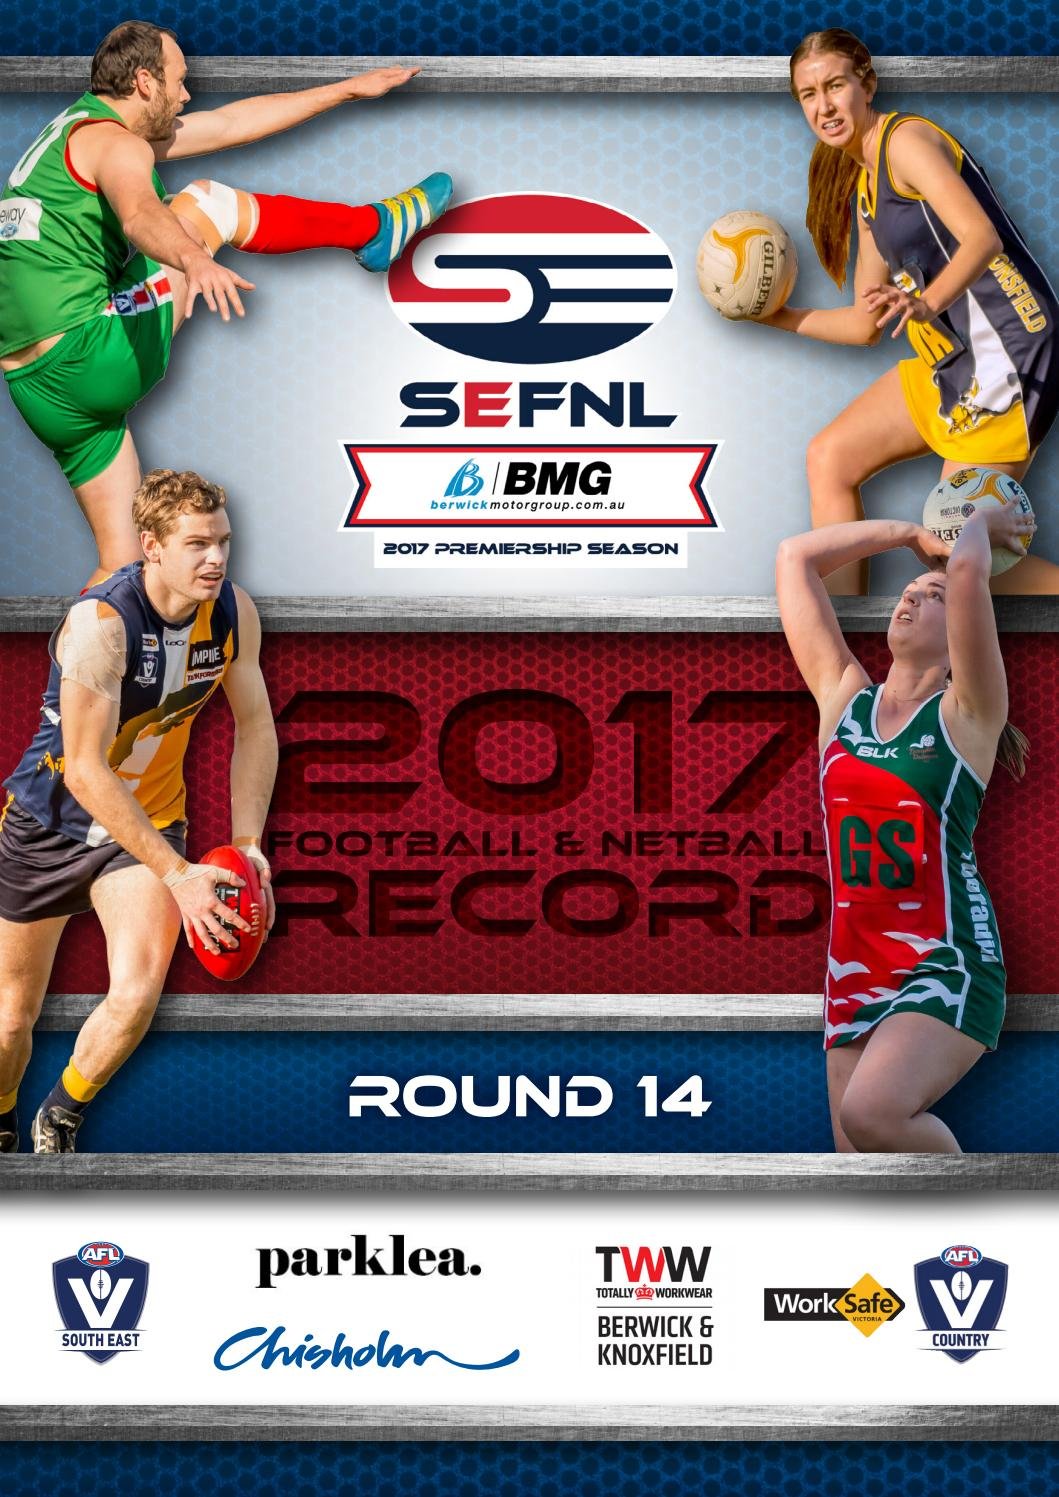 Alysson Sterling sefnl record round 14 2017afl south east - issuu